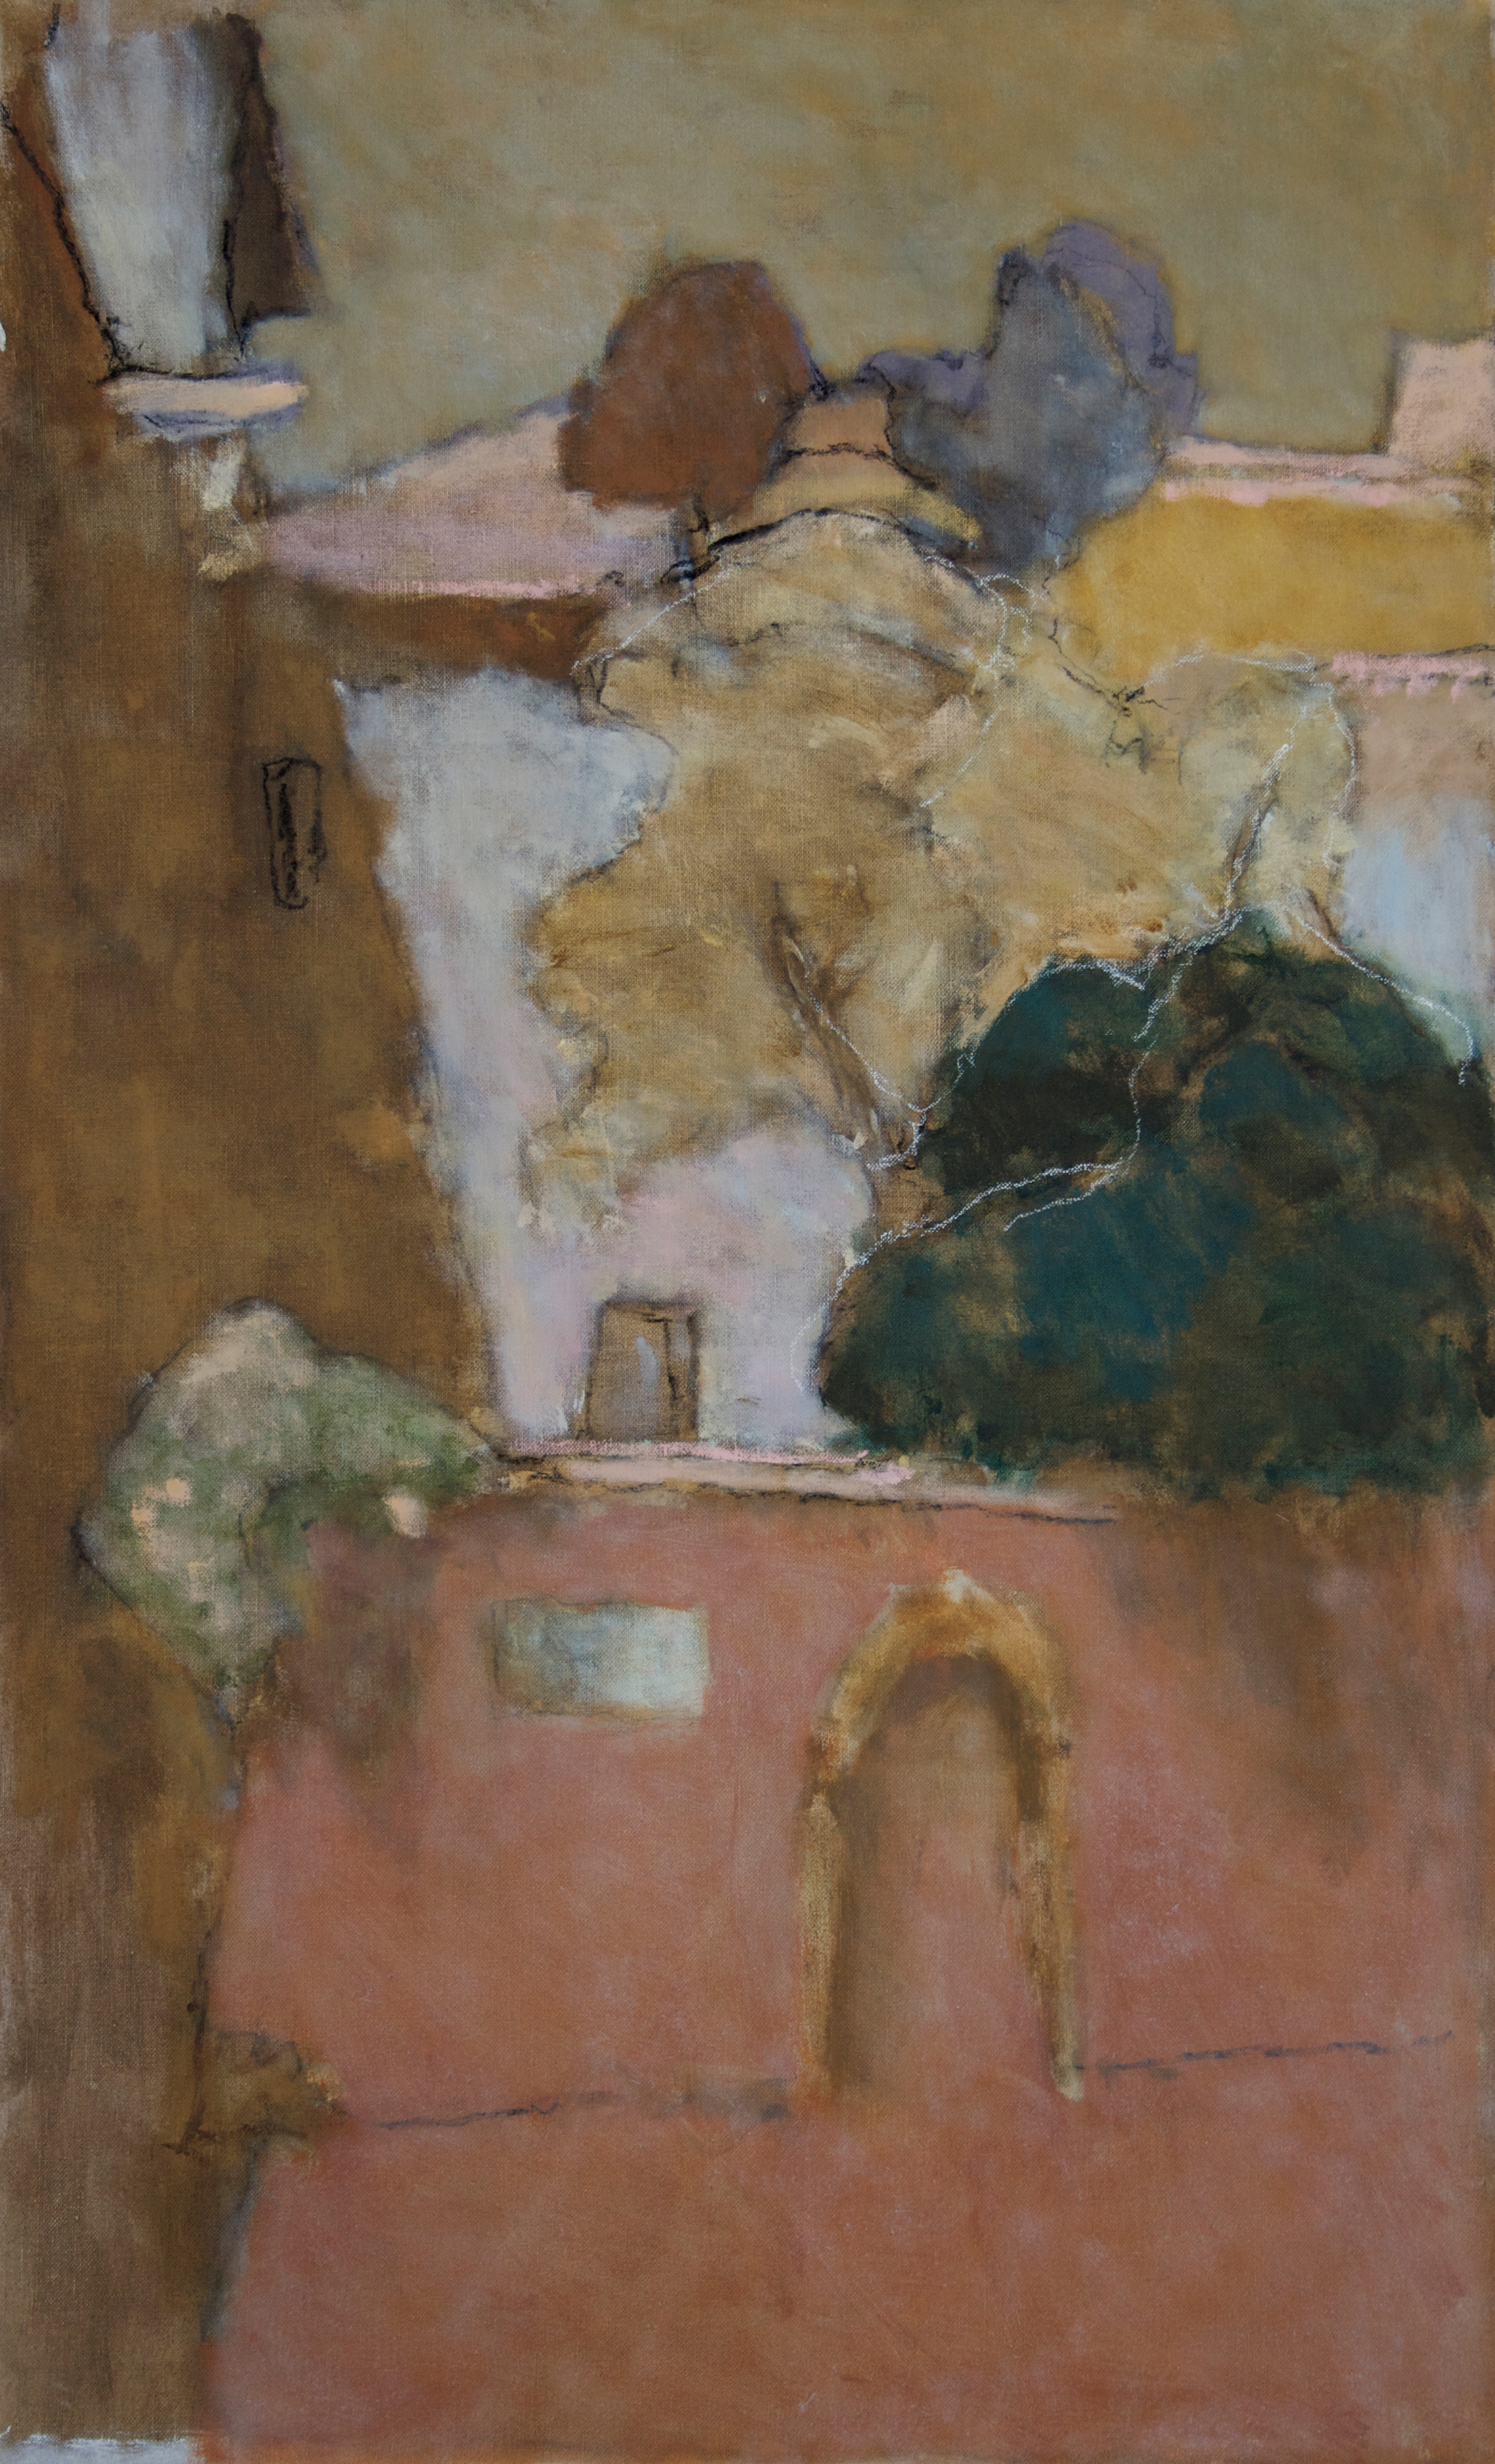 2006_Venice_oil_on_linen_42x25in_PF204.jpg